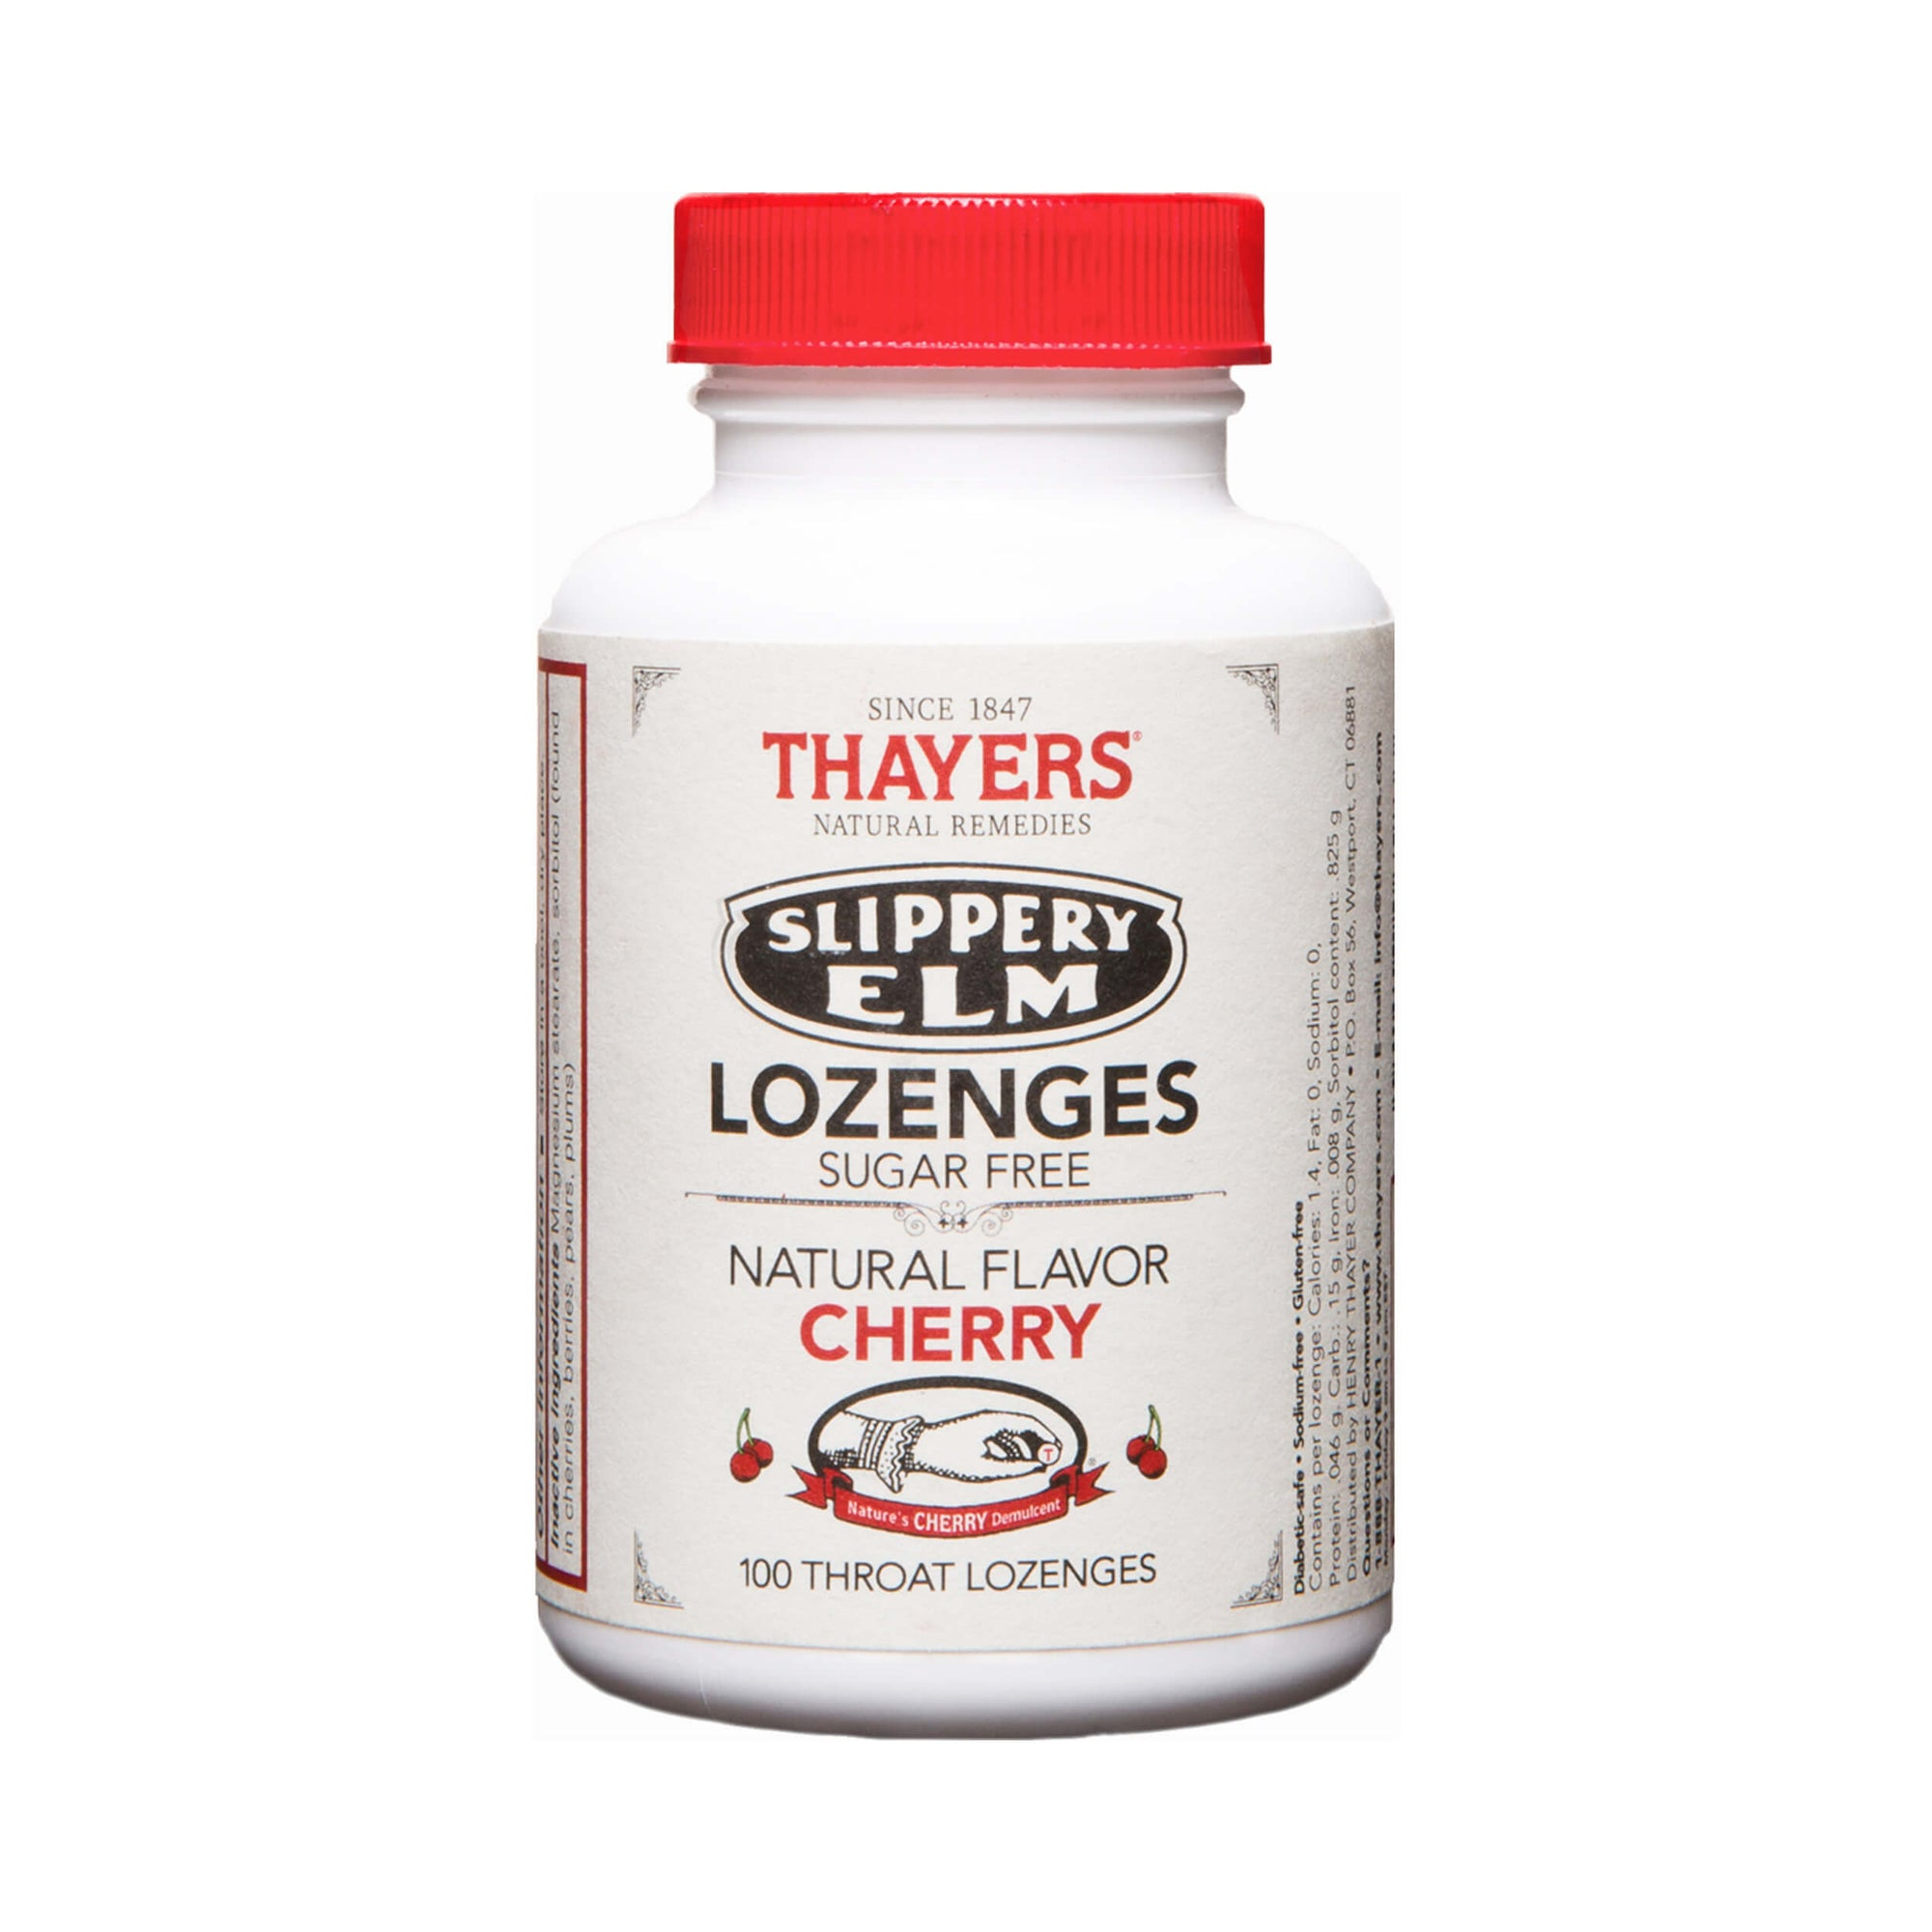 Thayers Sugar-Free Slippery Elm Lozenges Cherry 100 Lozenges